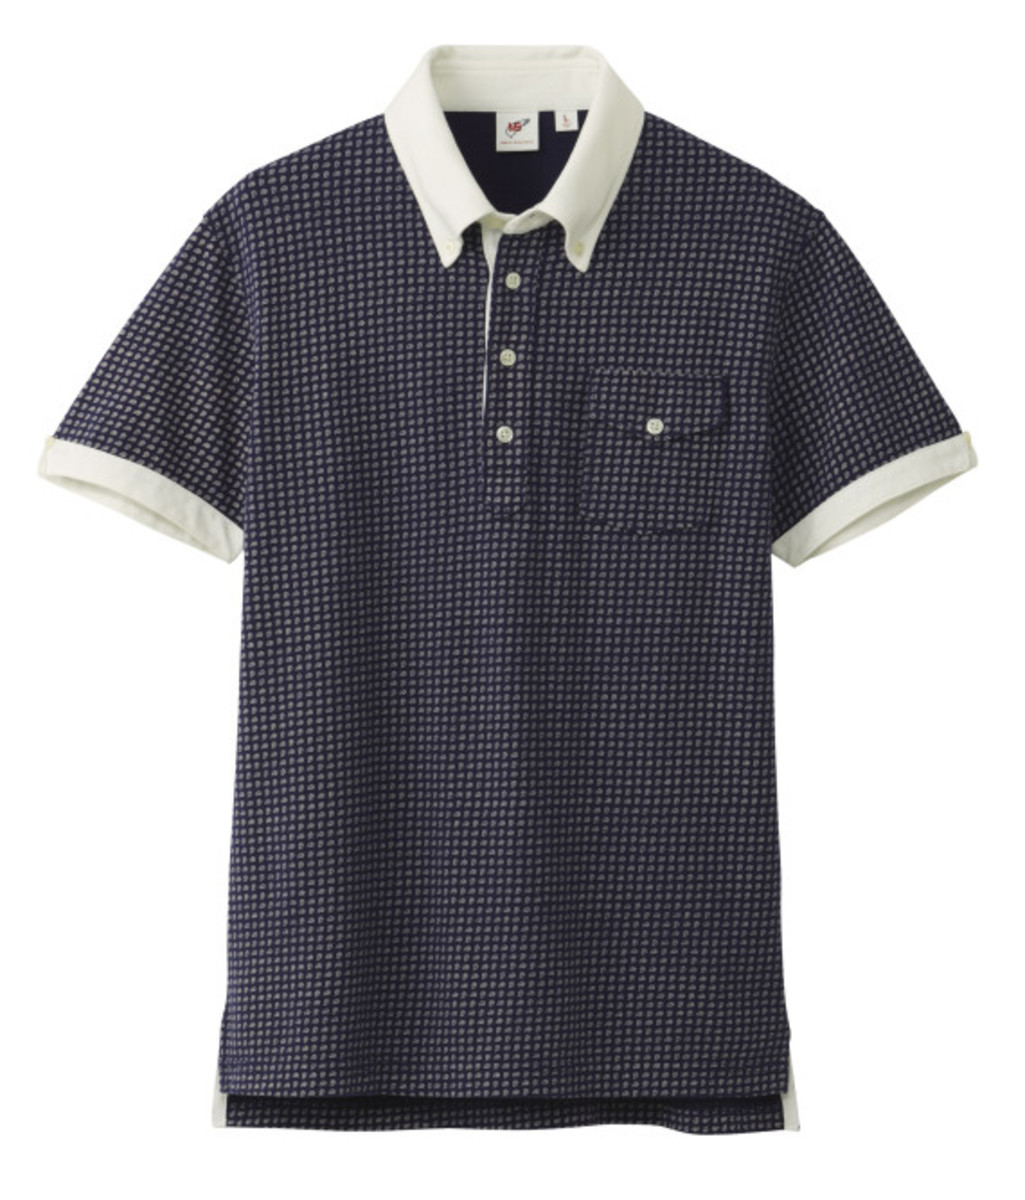 michael-bastian-x-uniqlo-mens-polo-shirt-collection-2013-44